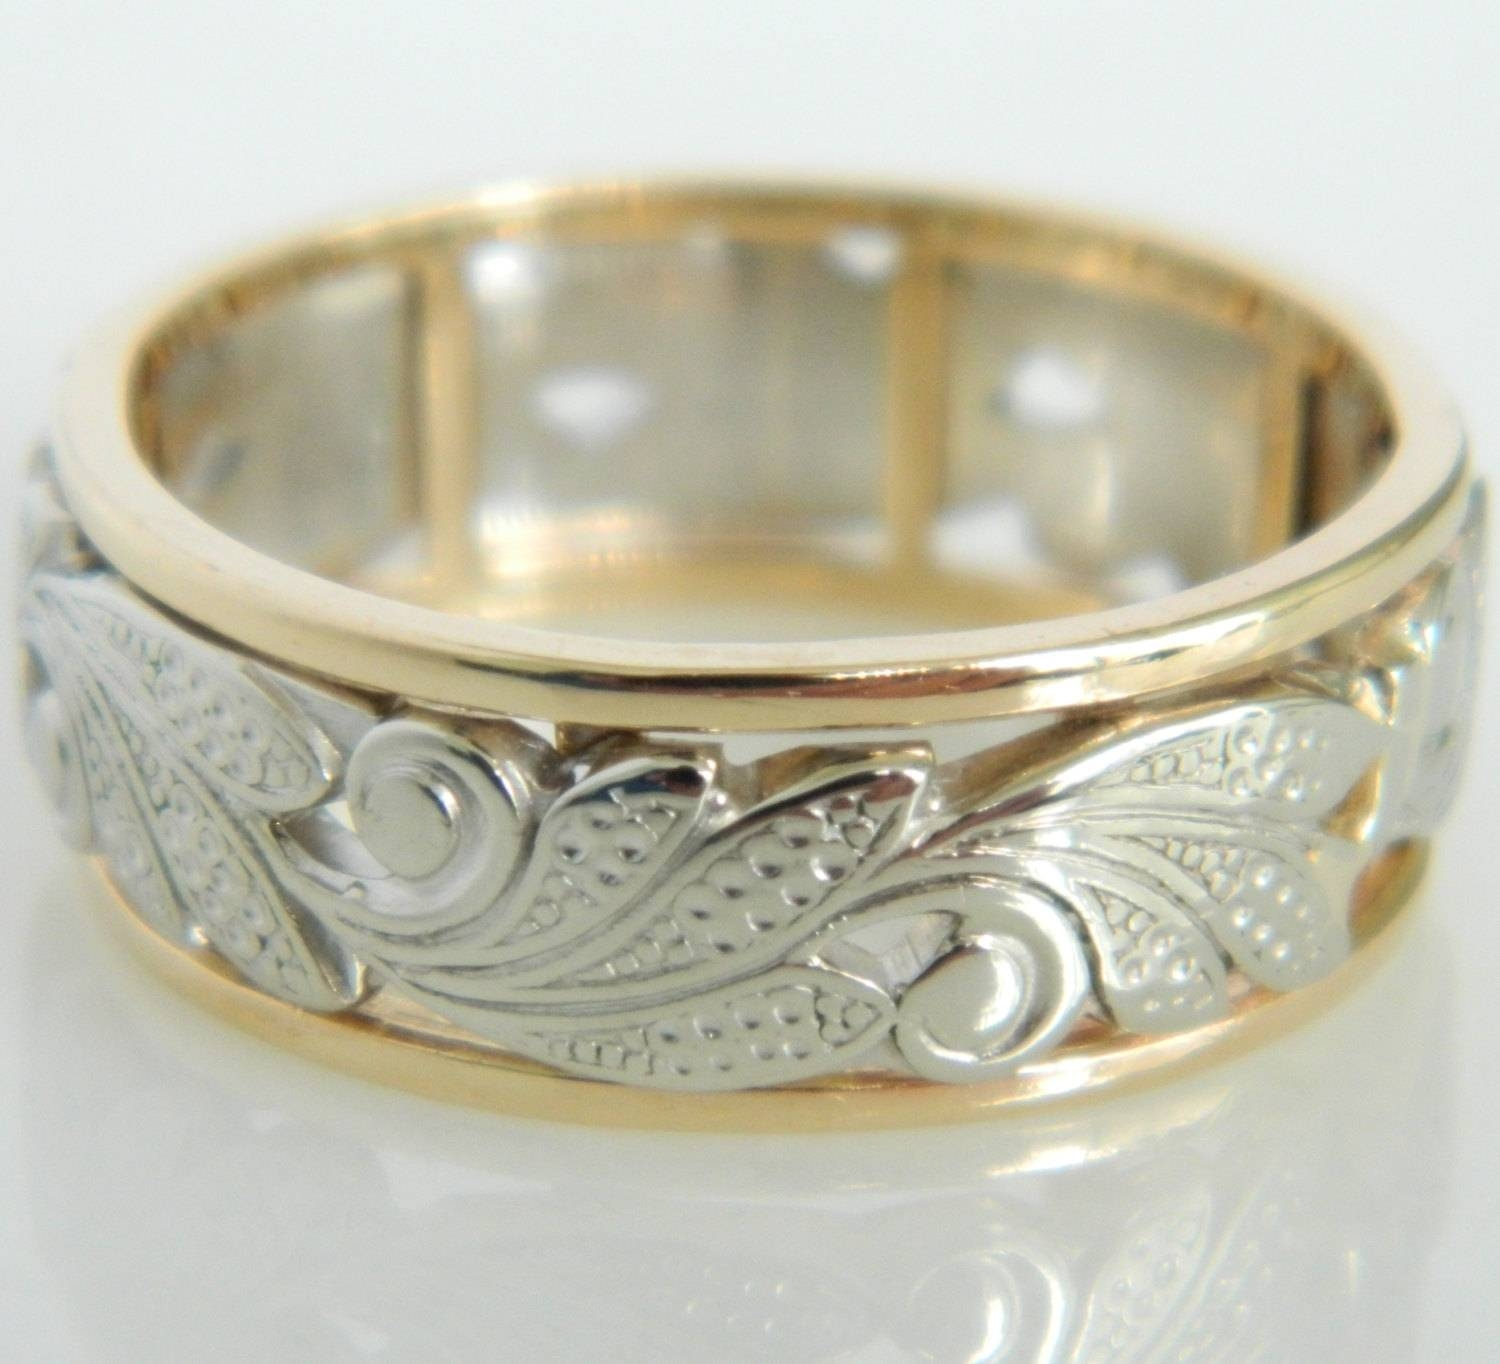 Vintage Artcarved 14K White & Yellow Gold Wedding Band Pertaining To Art Carved Wedding Bands (Gallery 15 of 15)